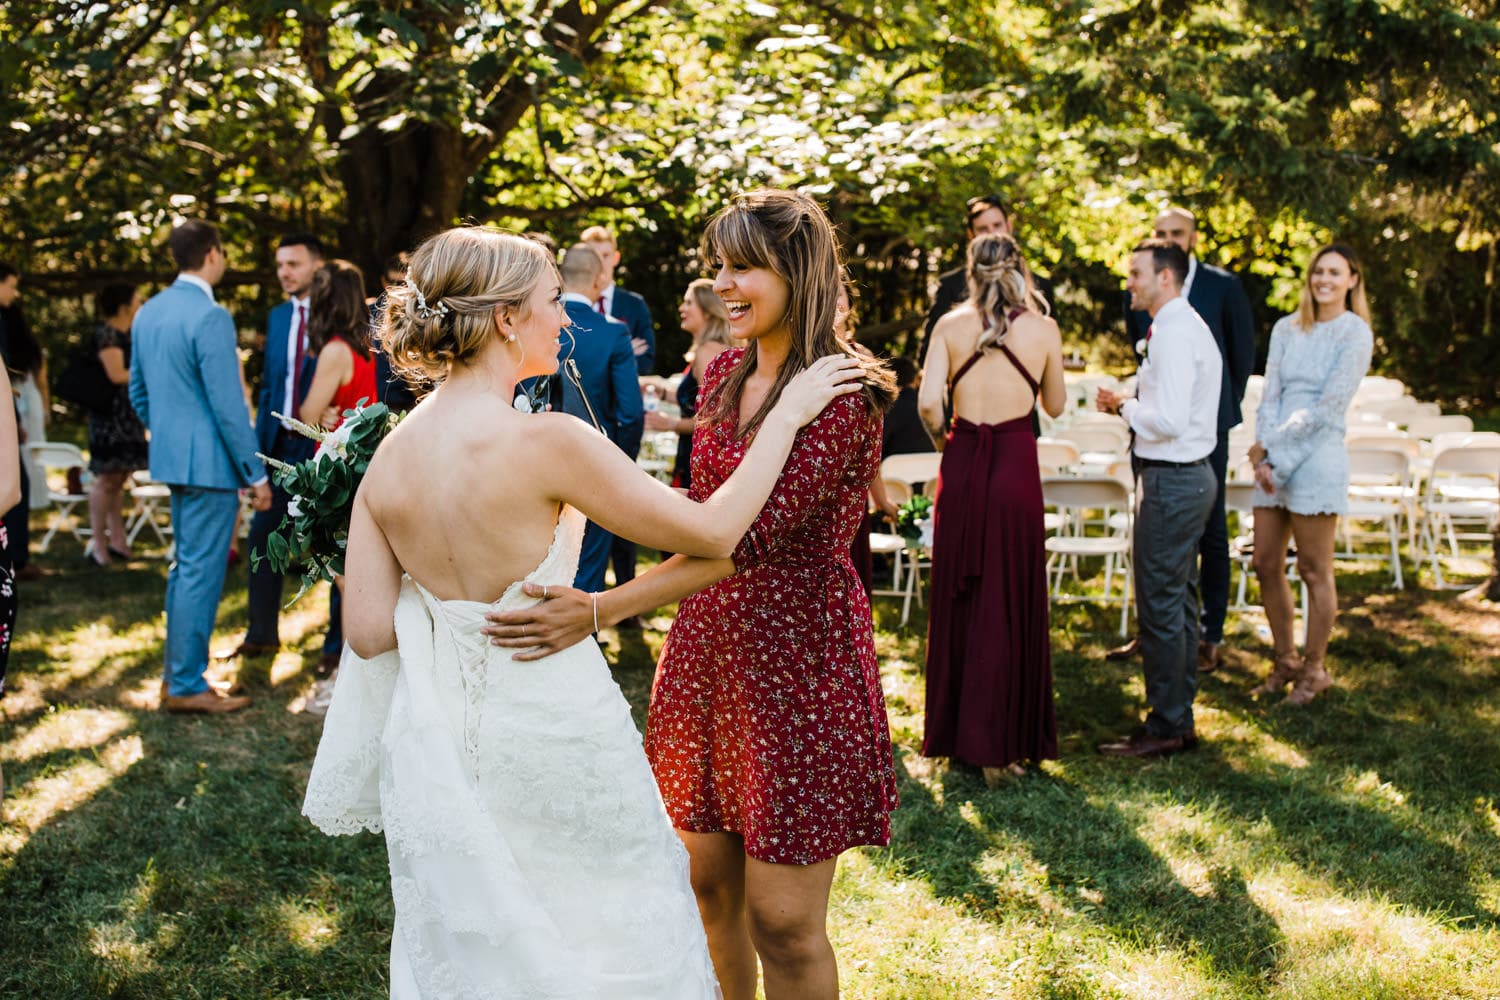 friend hugs bride after outdoor wedding ceremony - fairfield heritage house wedding